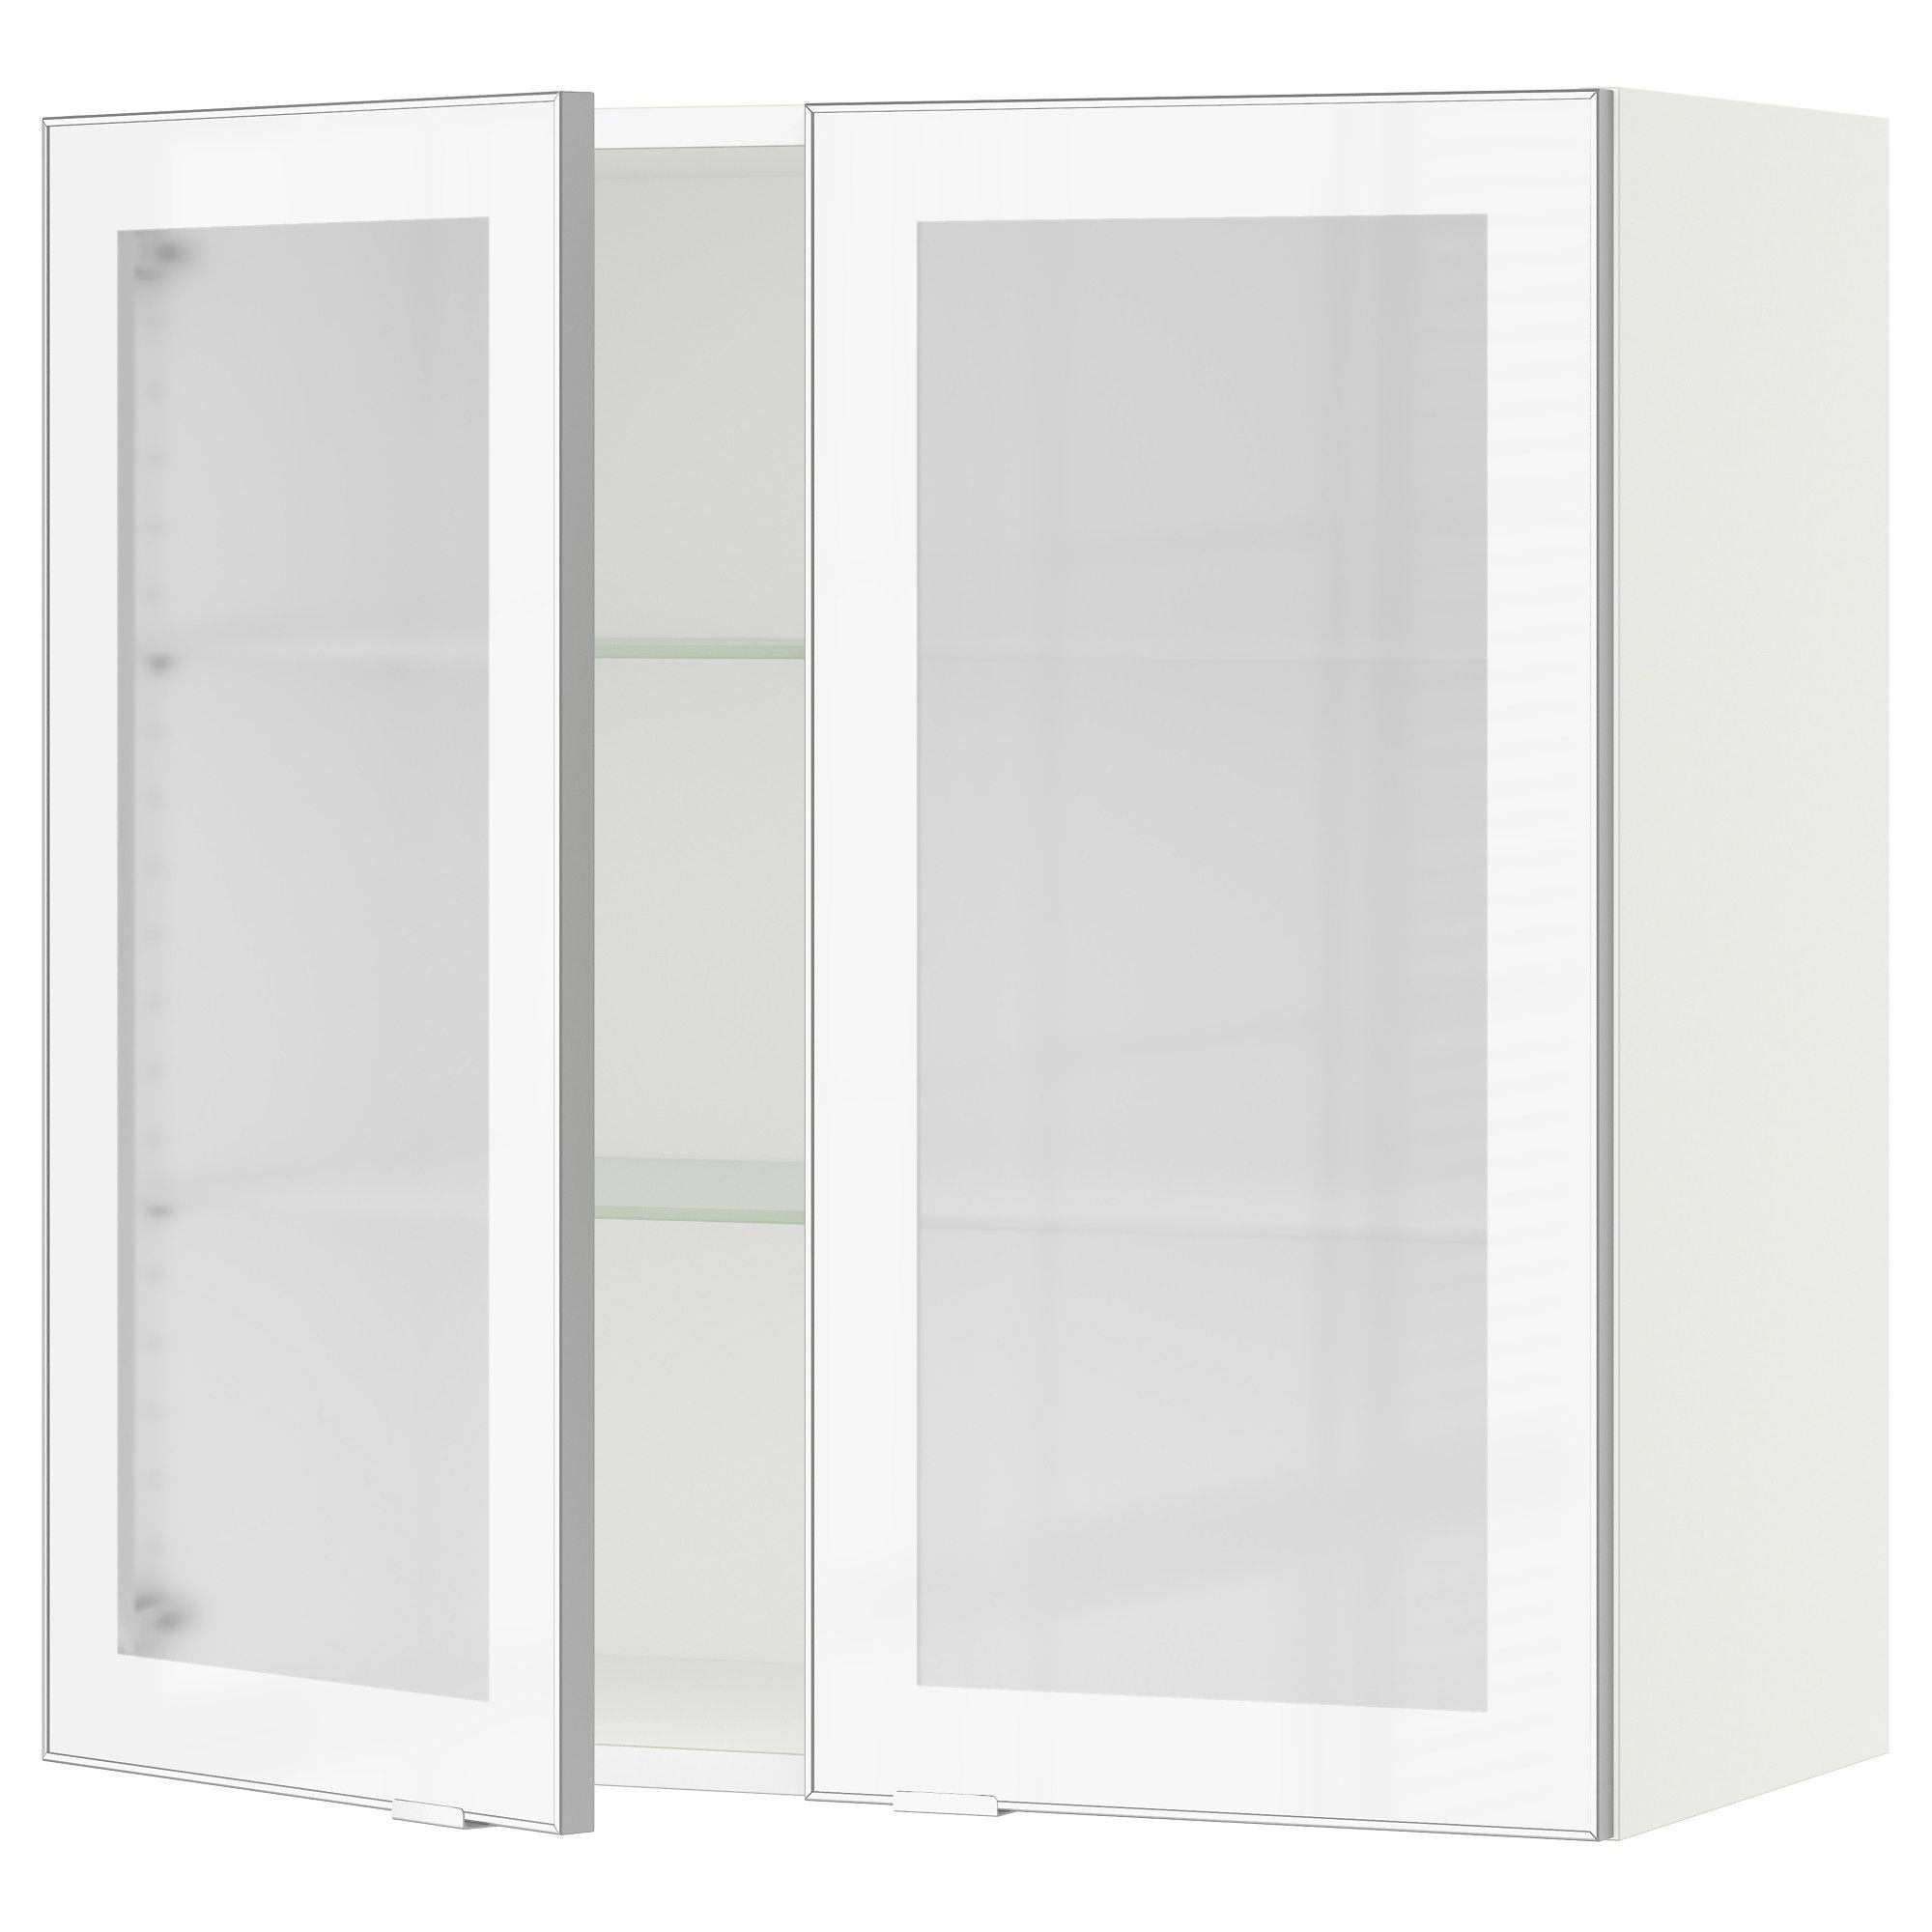 IKEA - SEKTION white Wall cabinet with 2 glass doors Frame ...